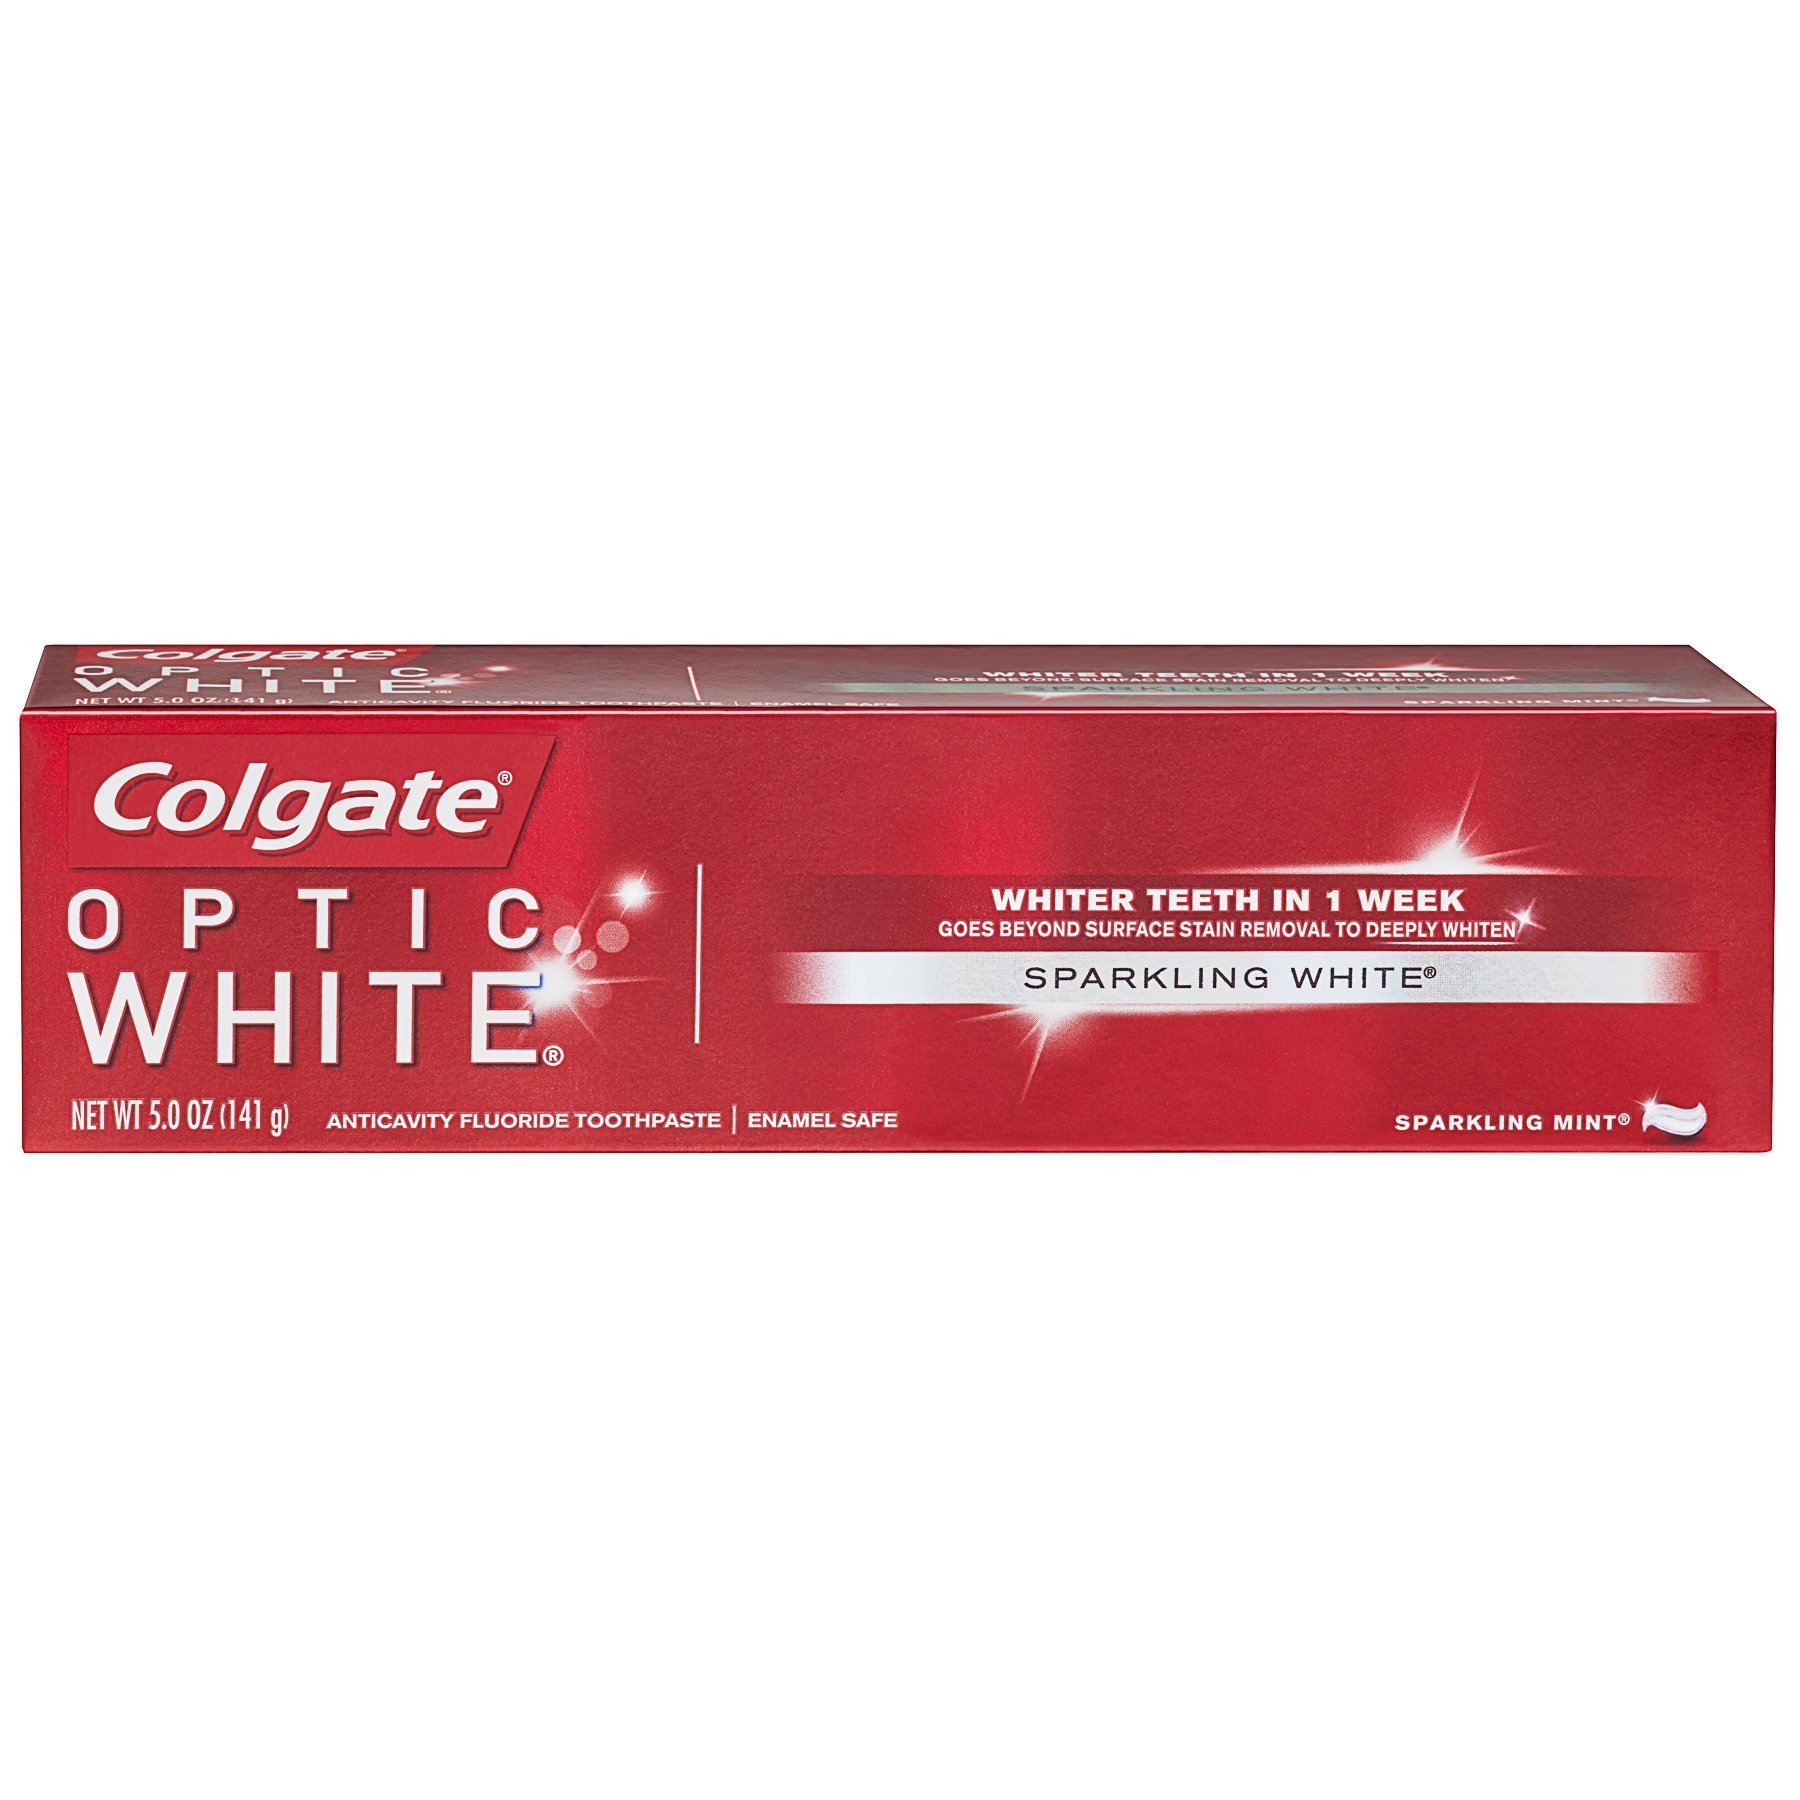 Colgate Optic White Whitening Toothpaste, Sparkling Mint - 5 ounce (6 Pack)